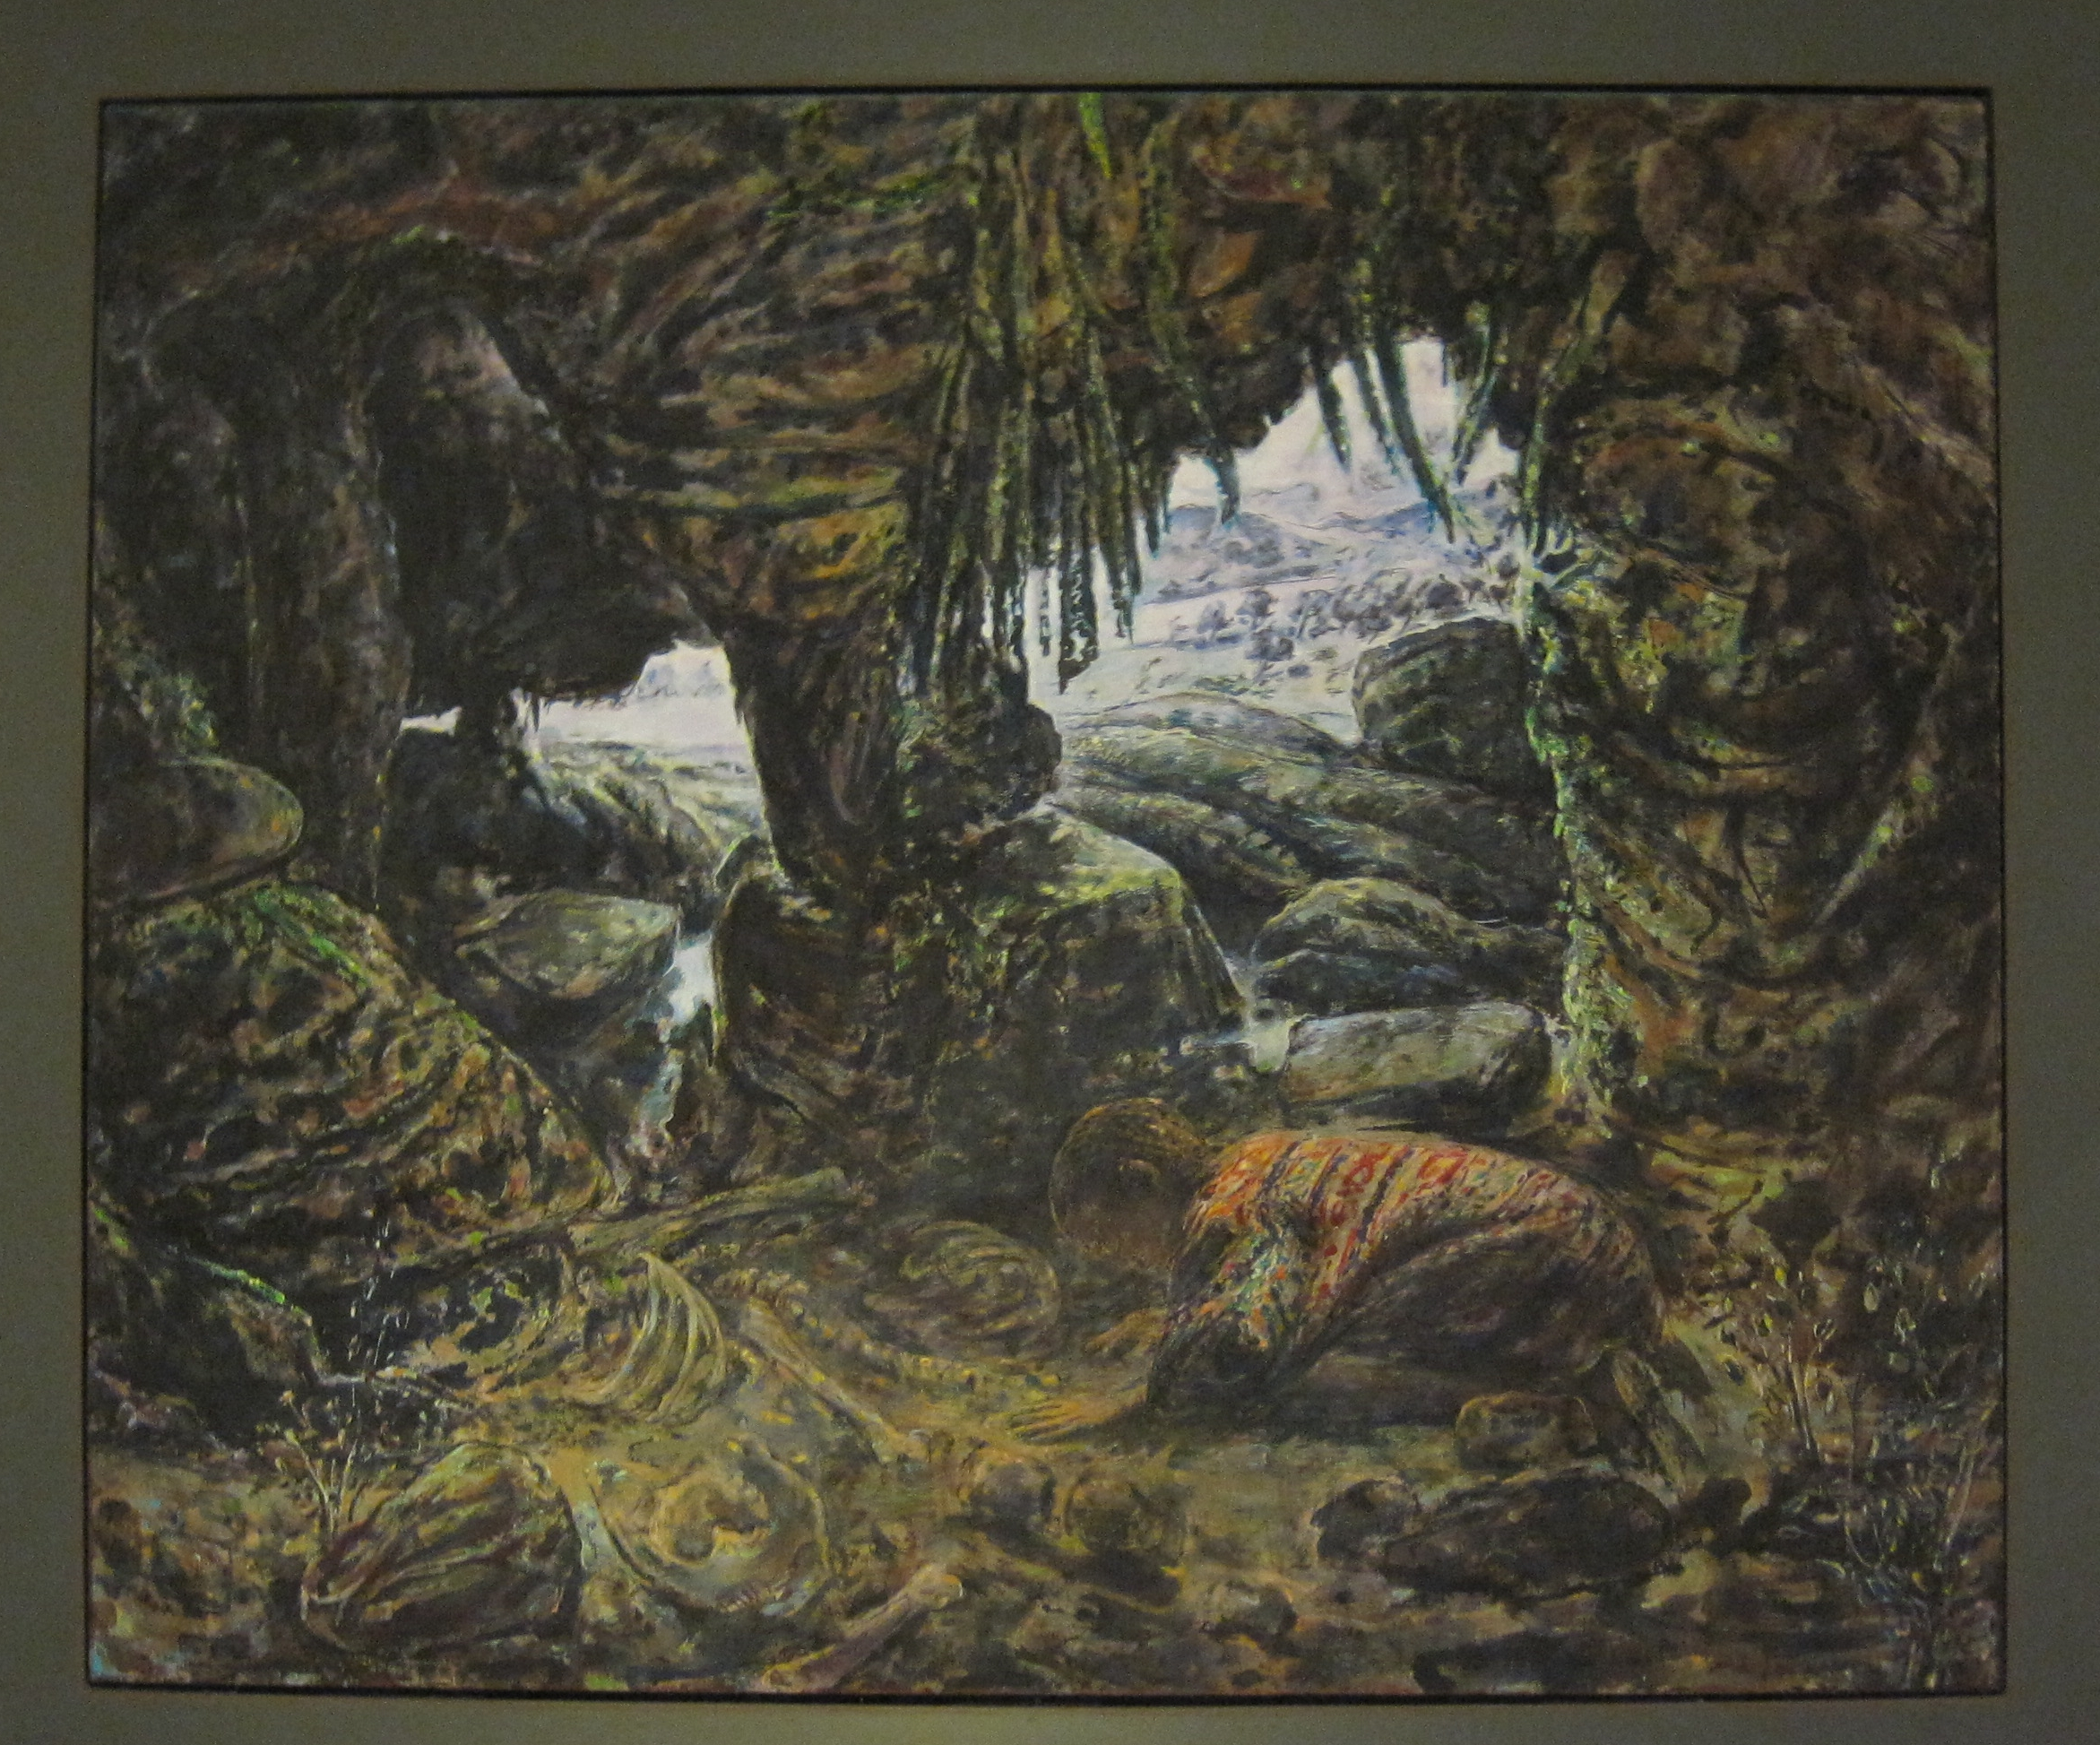 Bone Cave, 2004-5, synthetic resin on linen, 167 x 2001 cm